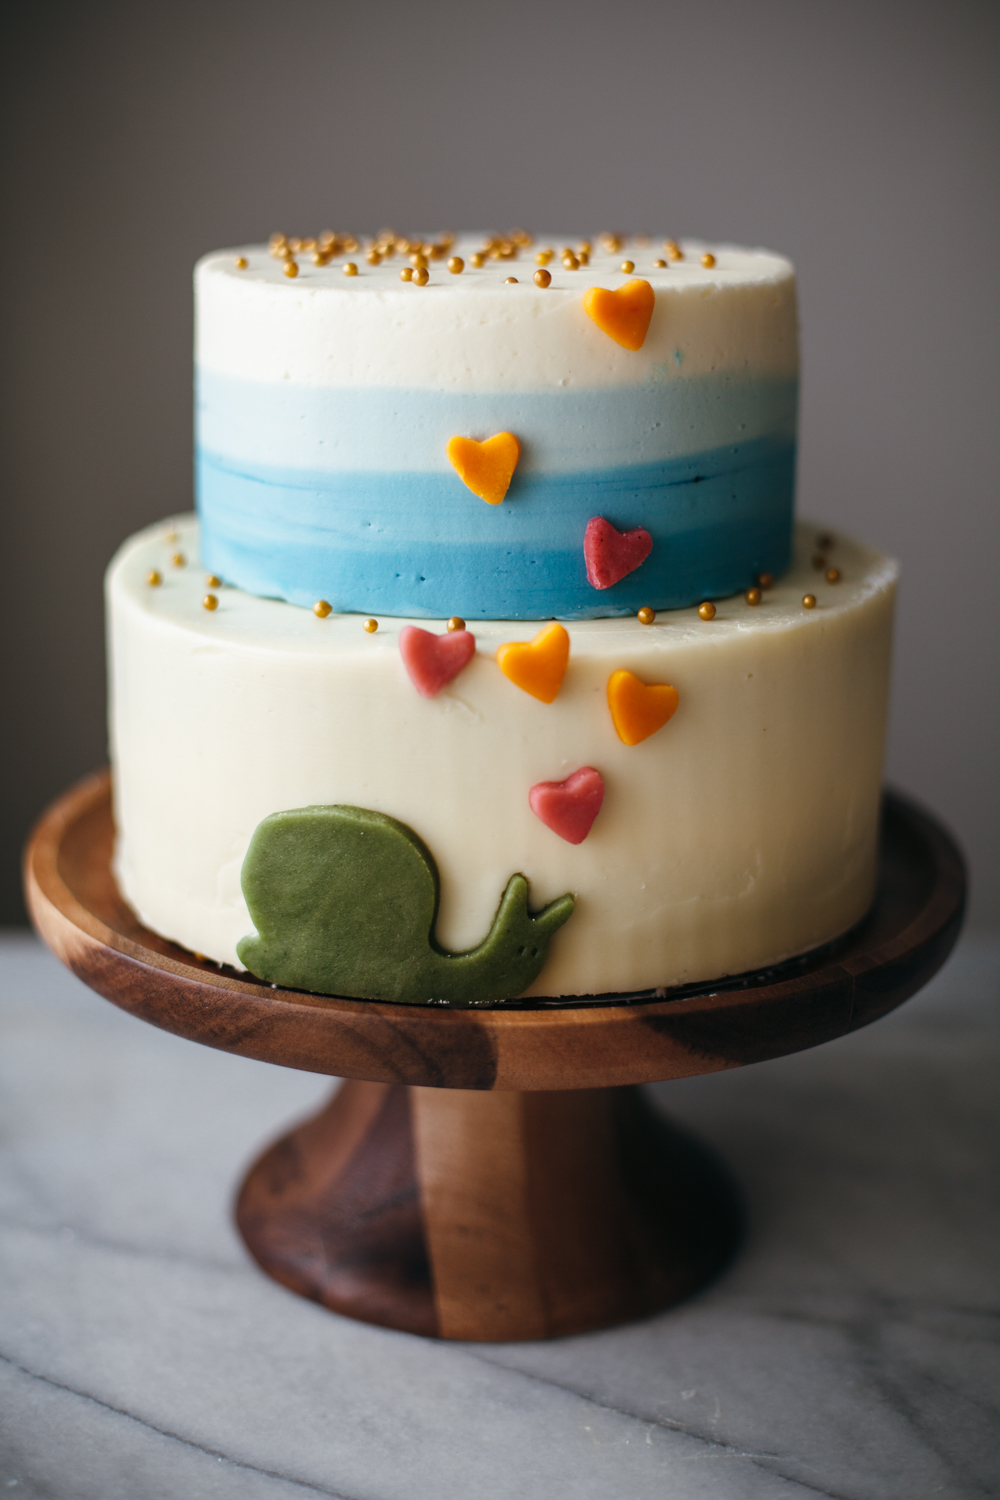 Cake Decorating With Different Tips : cake decorating tips   molly yeh